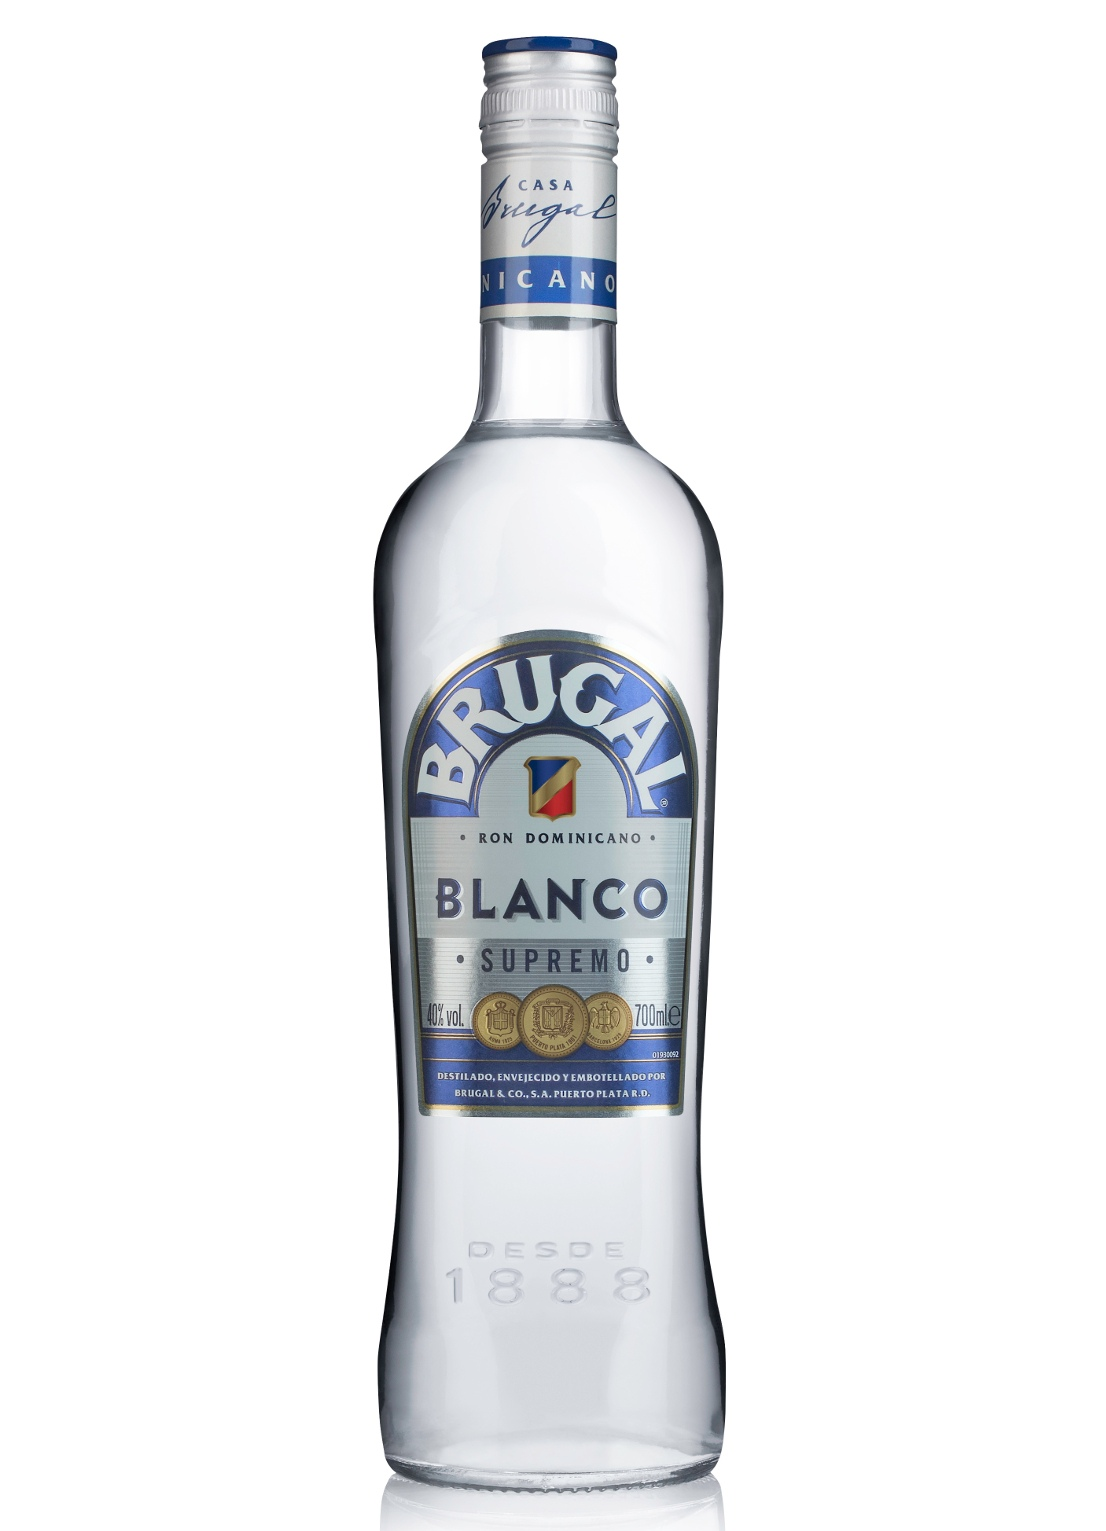 Brugal Blanco Supremo